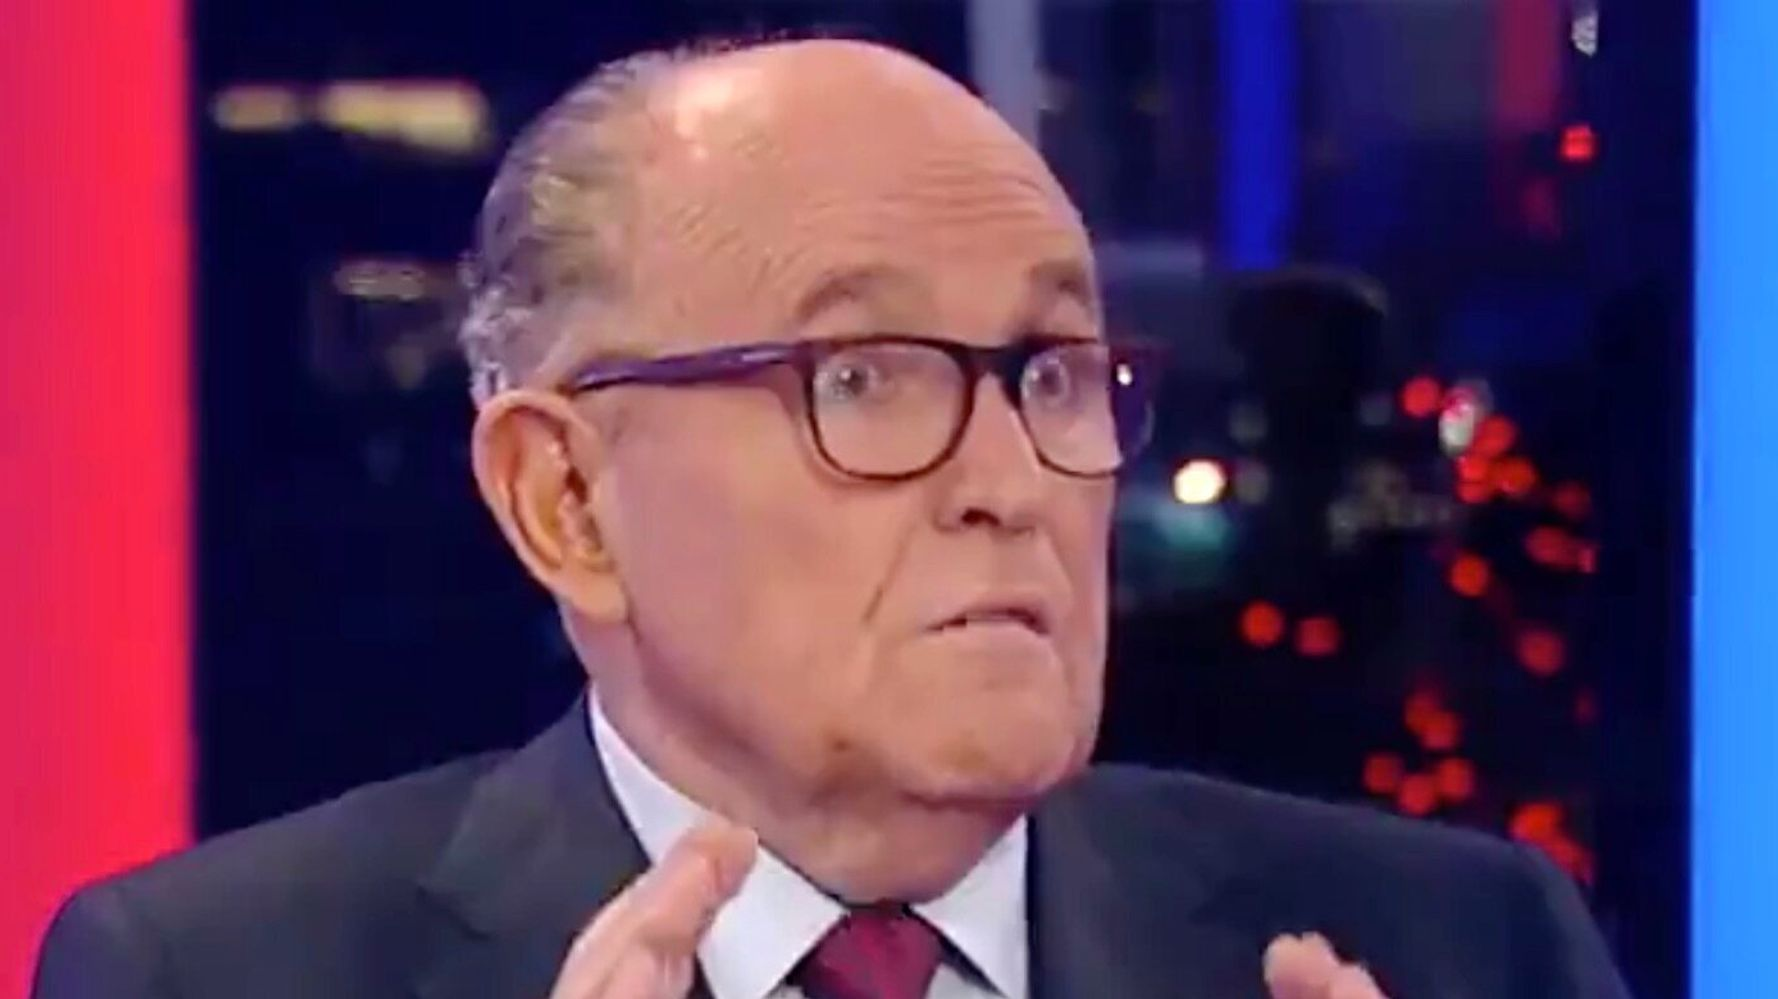 Giuliani: Dems 'Want To Literally Kill Me' Over Latest Bonkers Conspiracy Theory